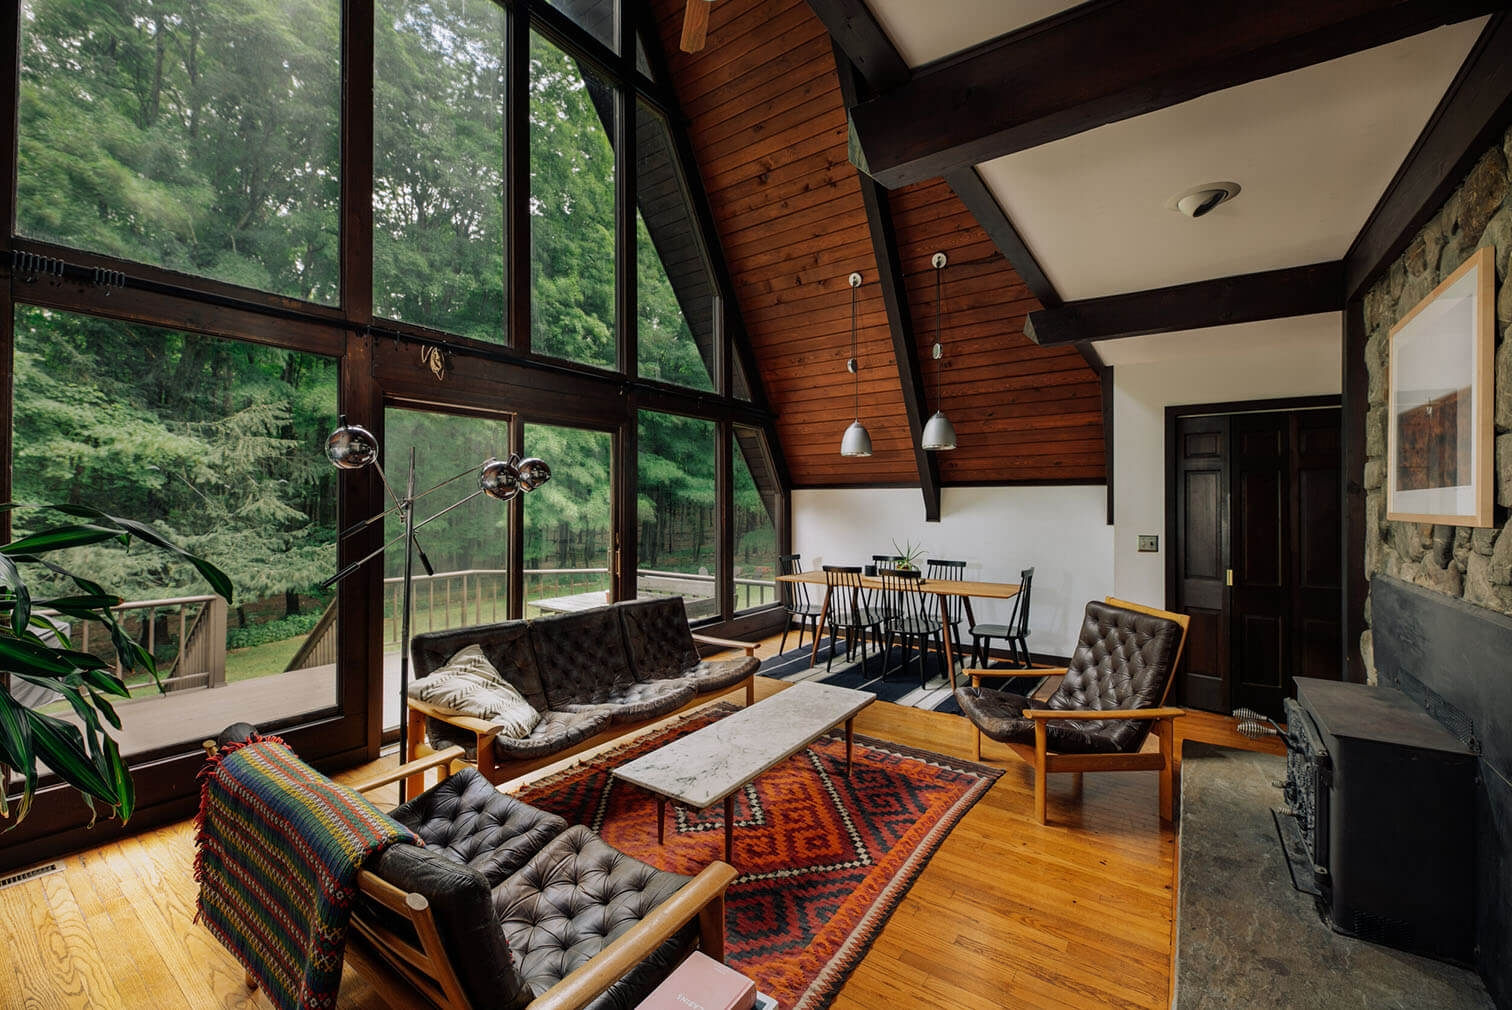 A frame cabin for sale New York Willow Glen Road39